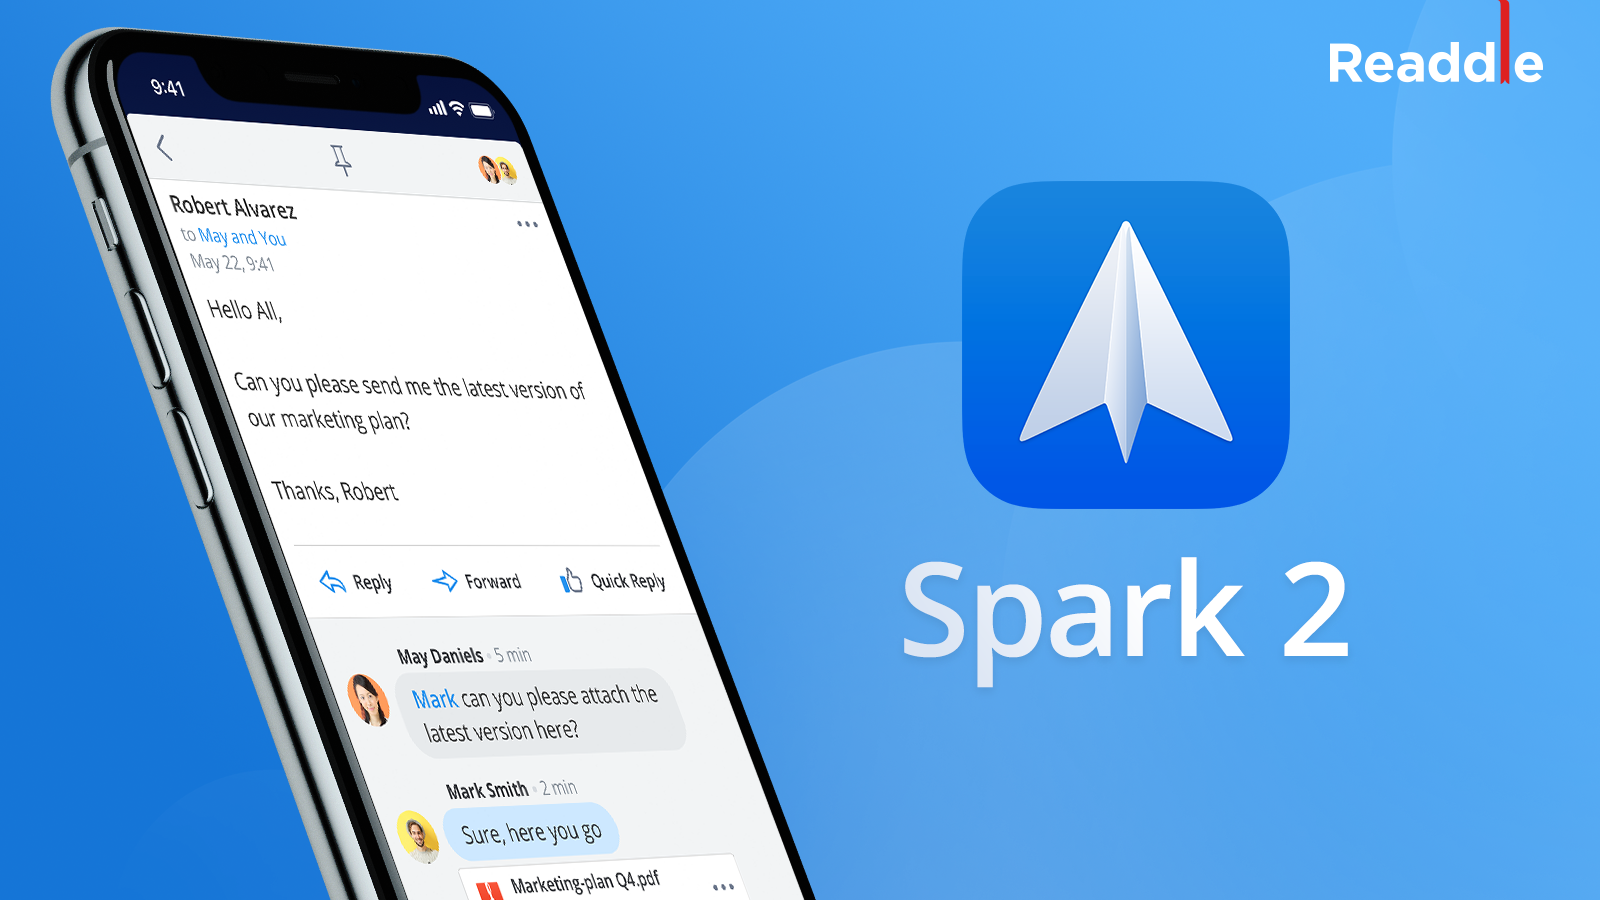 5 Things You Can't Do With Regular Email, But Can With Spark